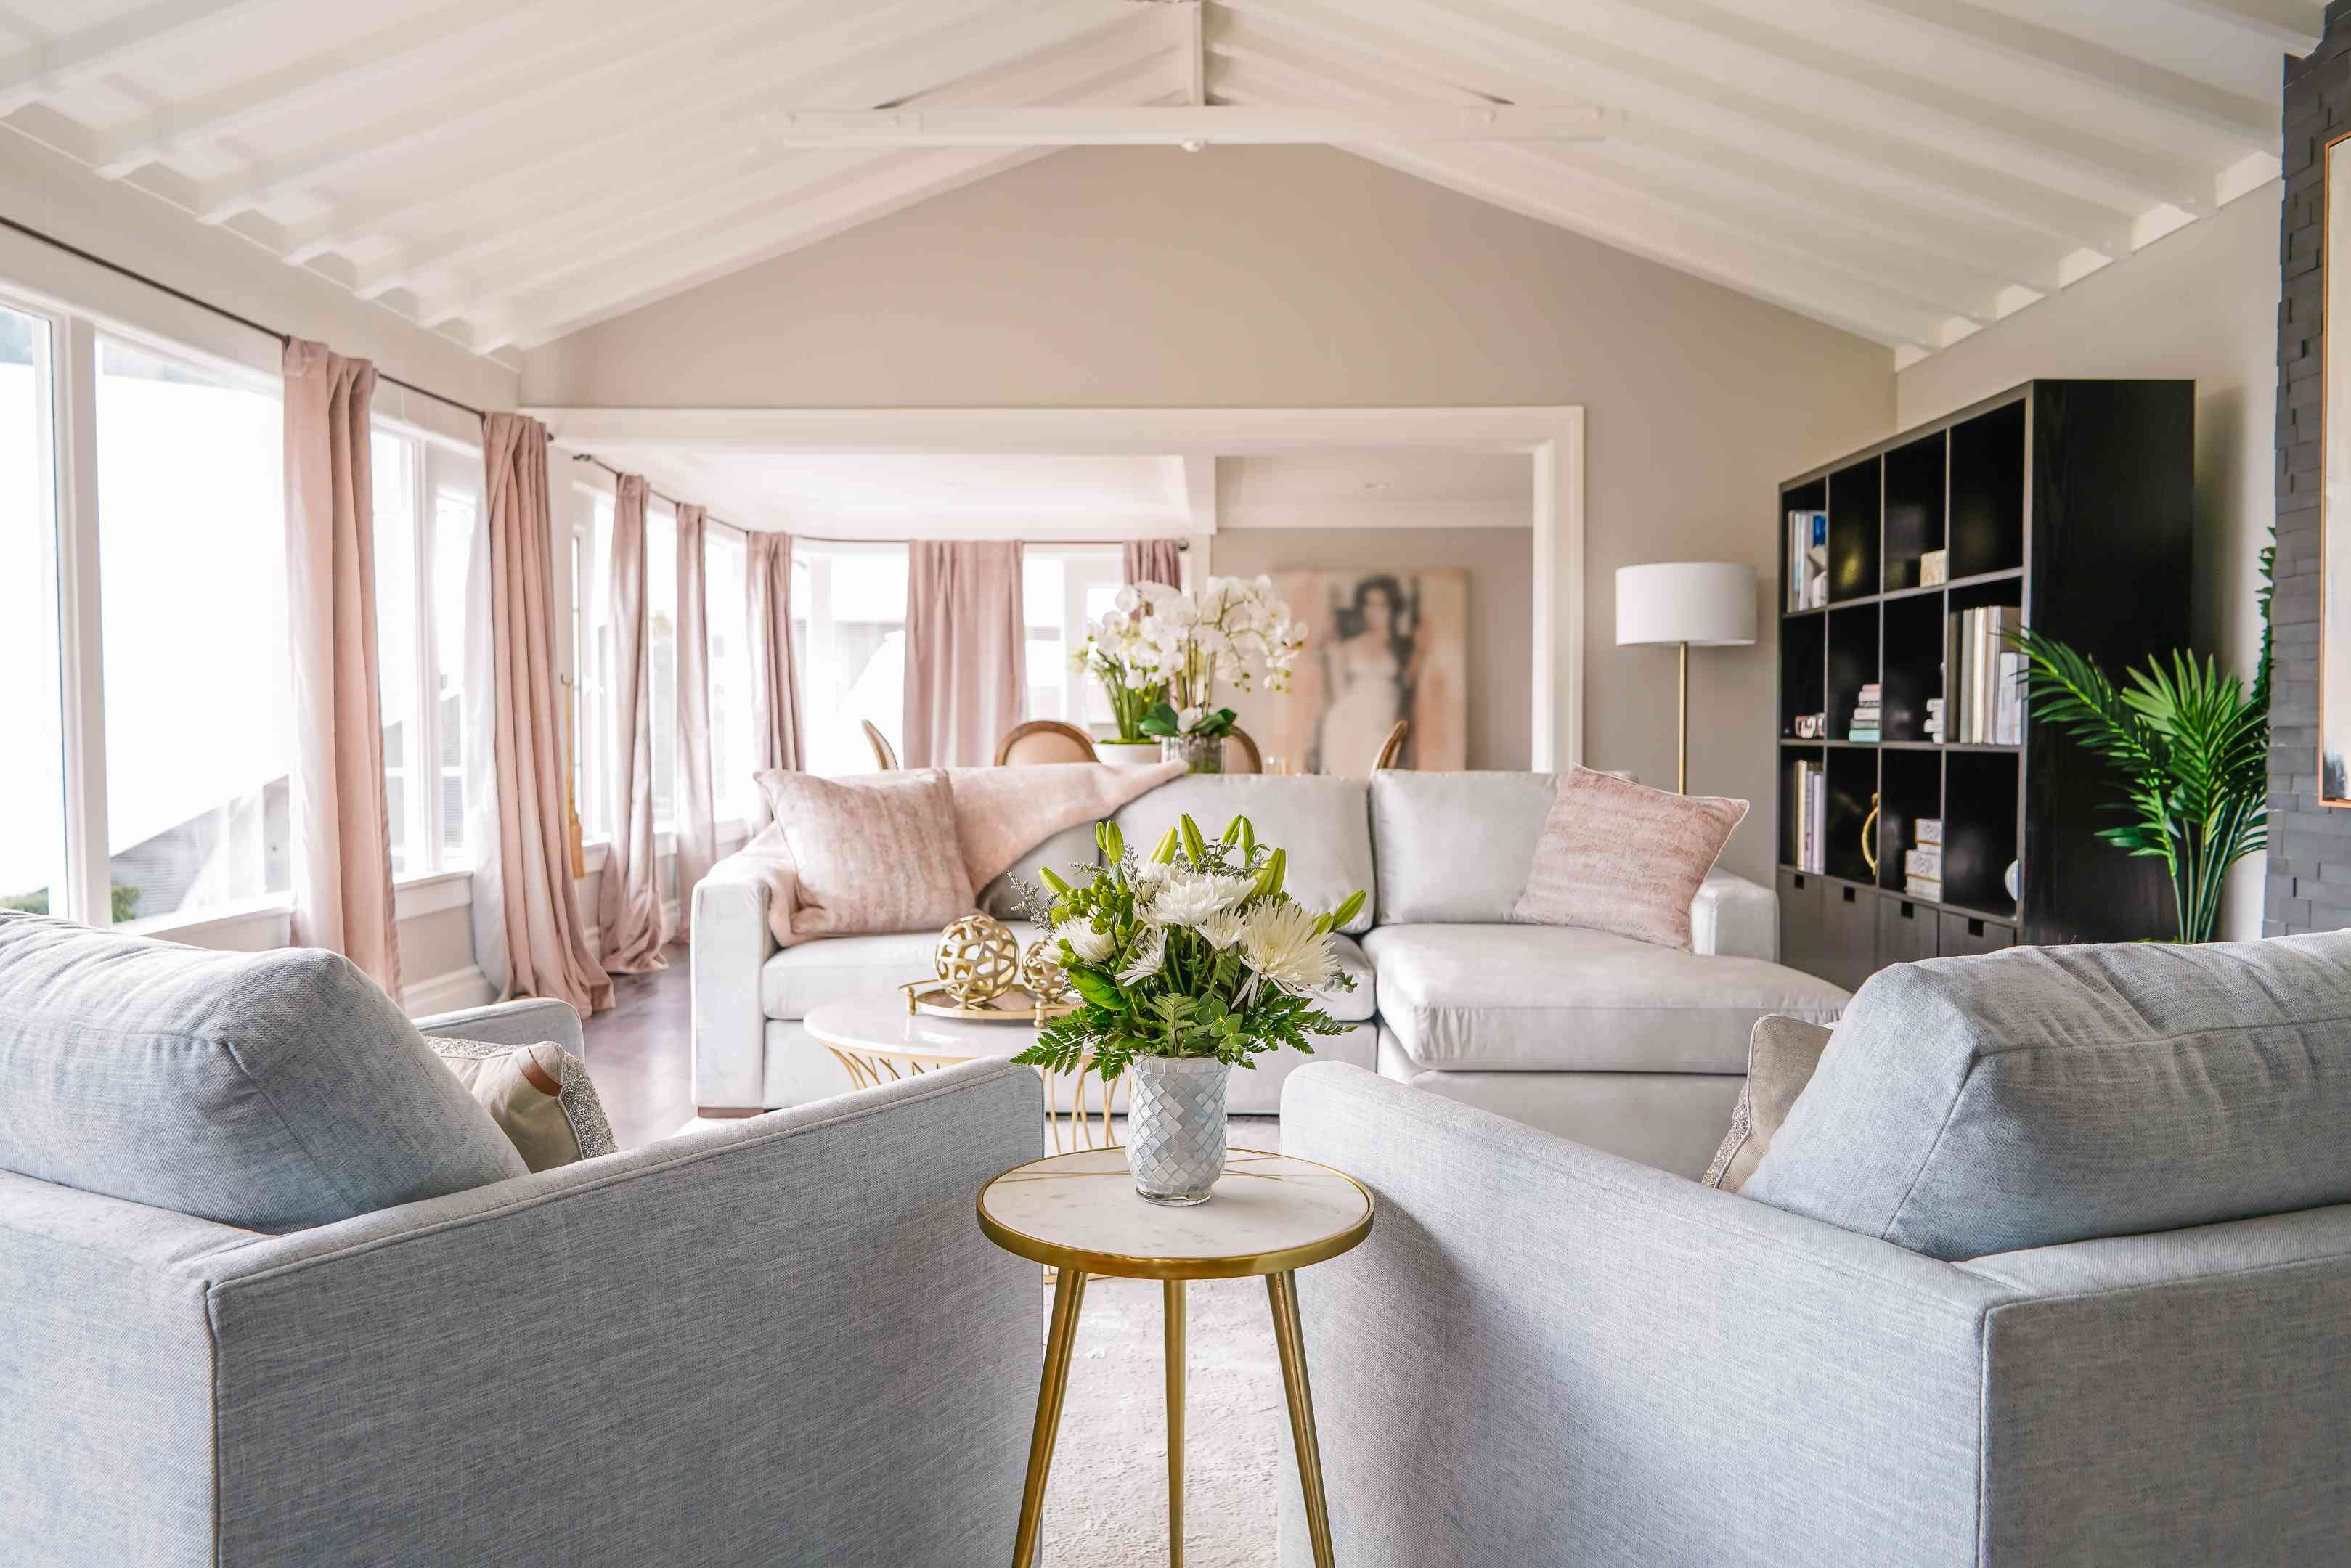 Chrishell Stause's redecorated living room that features items from TJMaxx and Marshalls